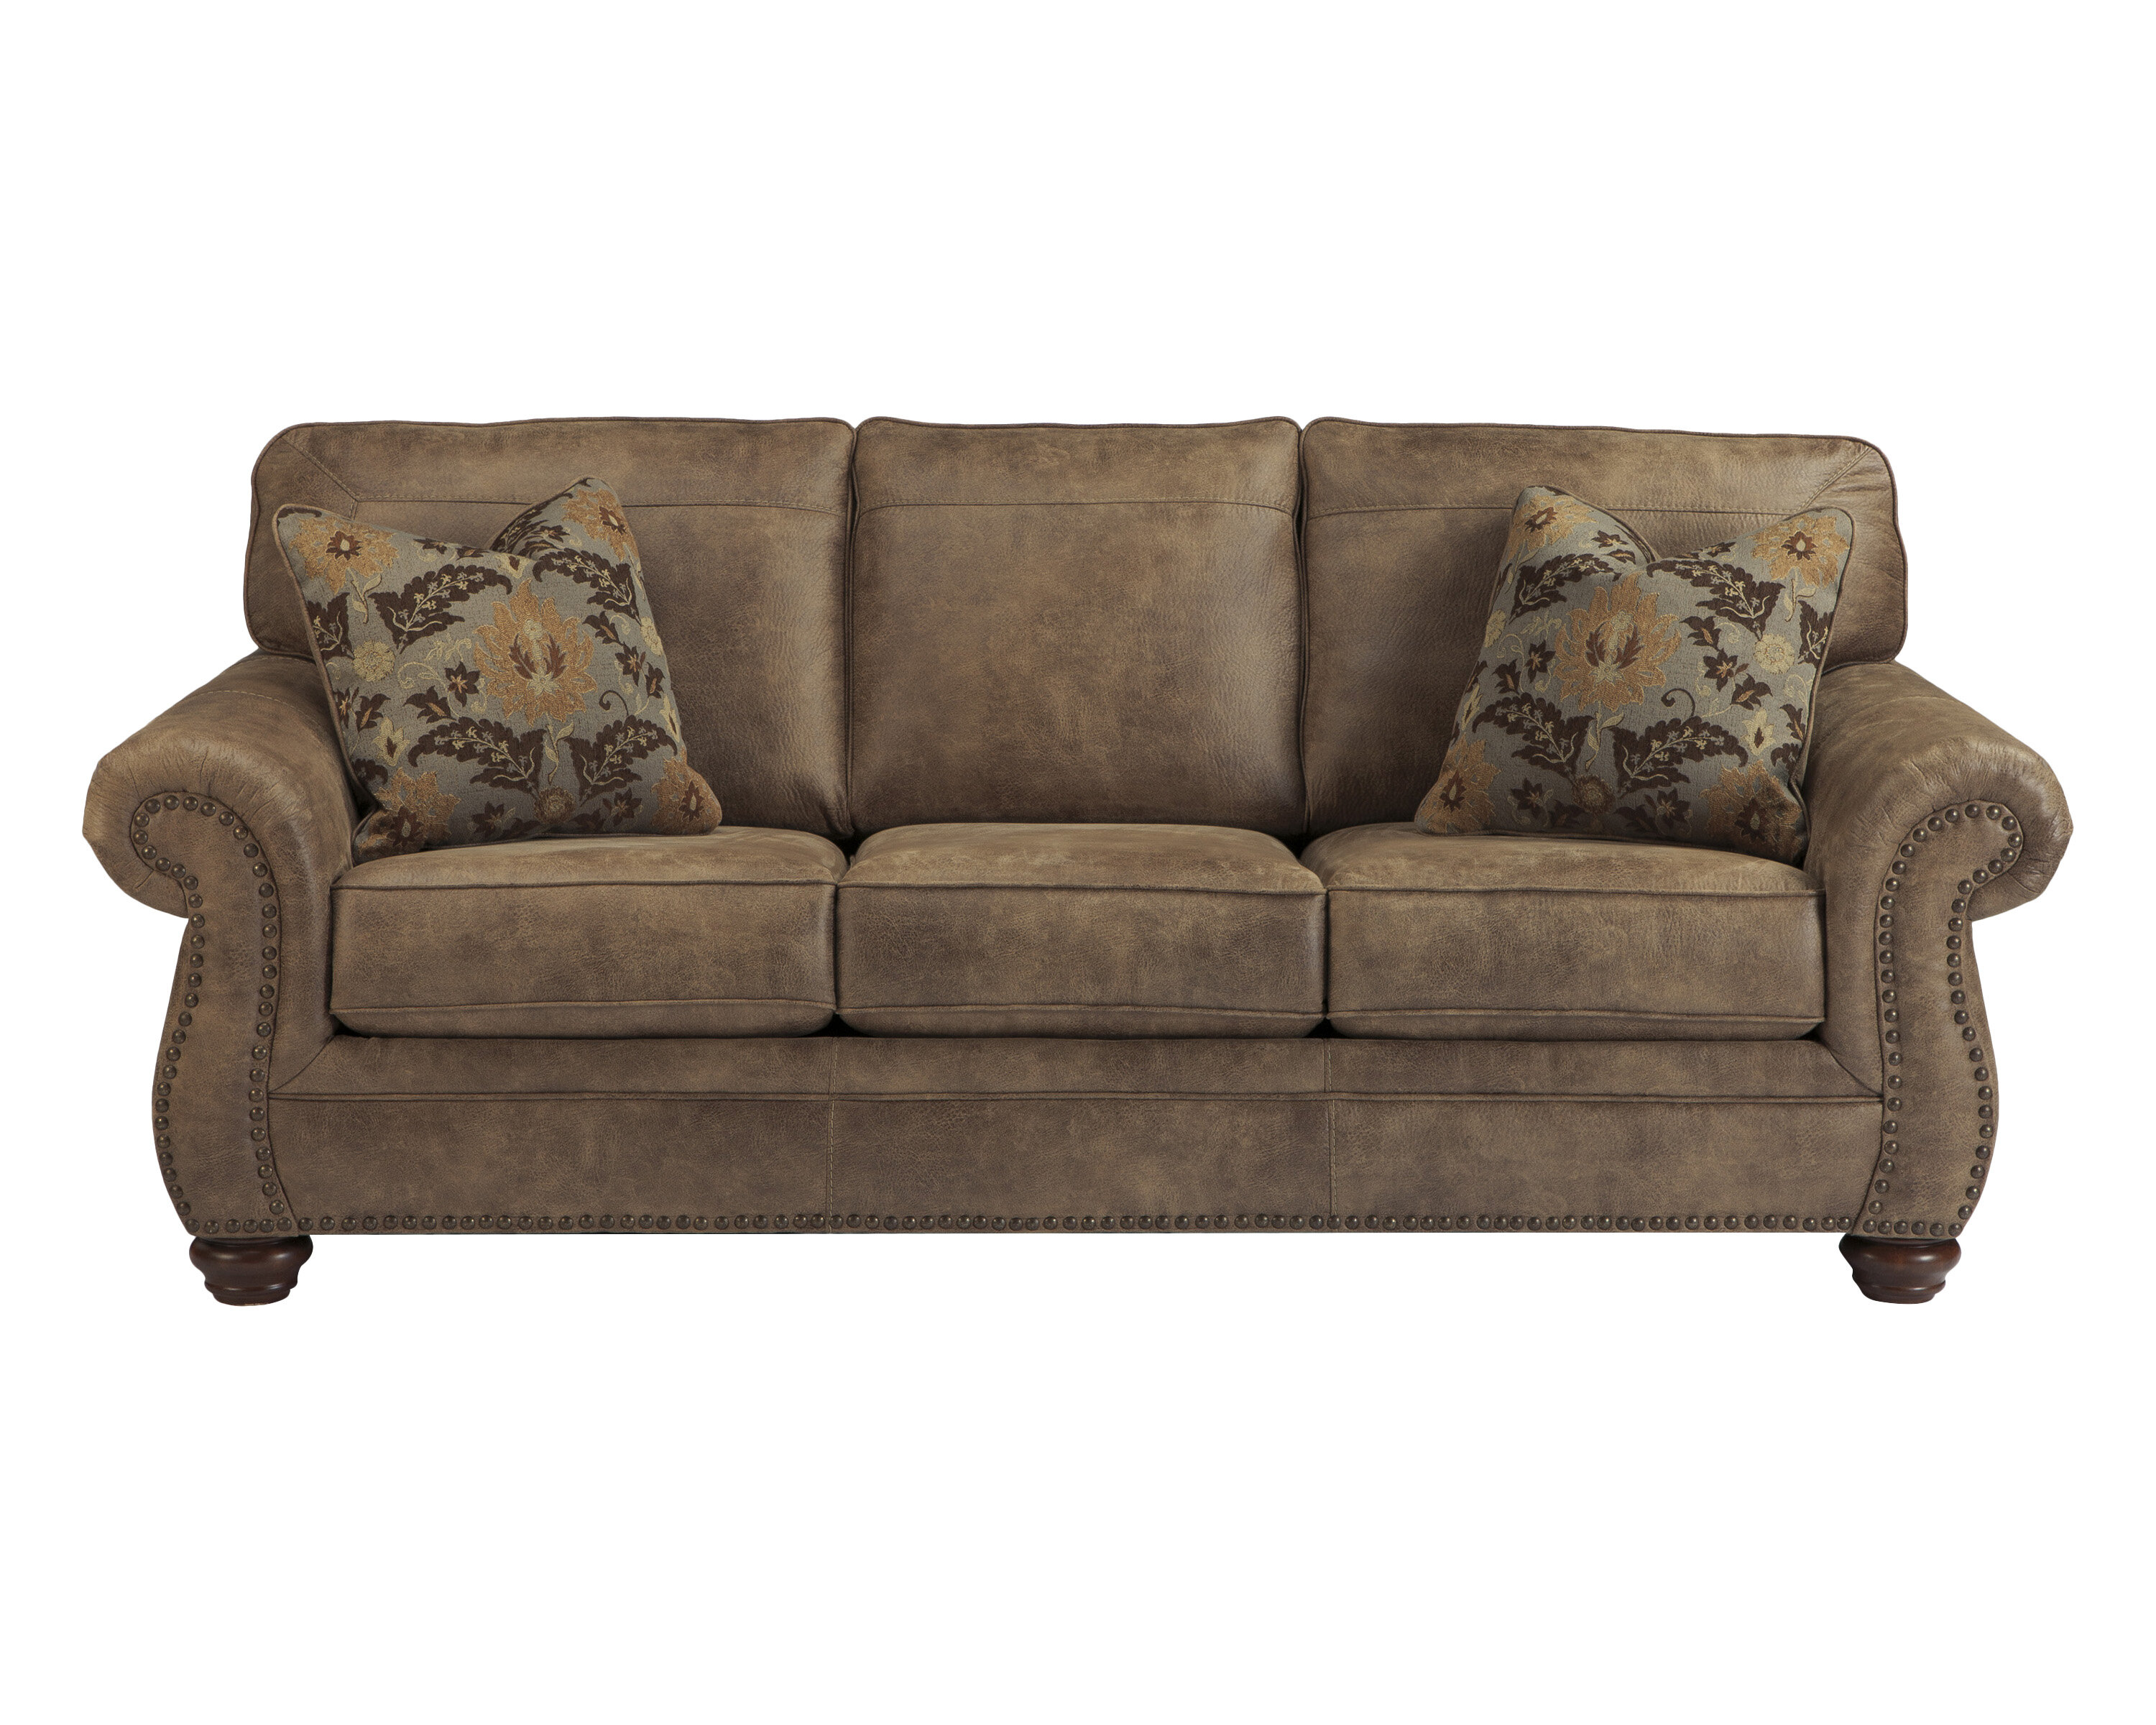 bookshelf lounge sets meyer fred set sofa couch gallery chair pinterest and